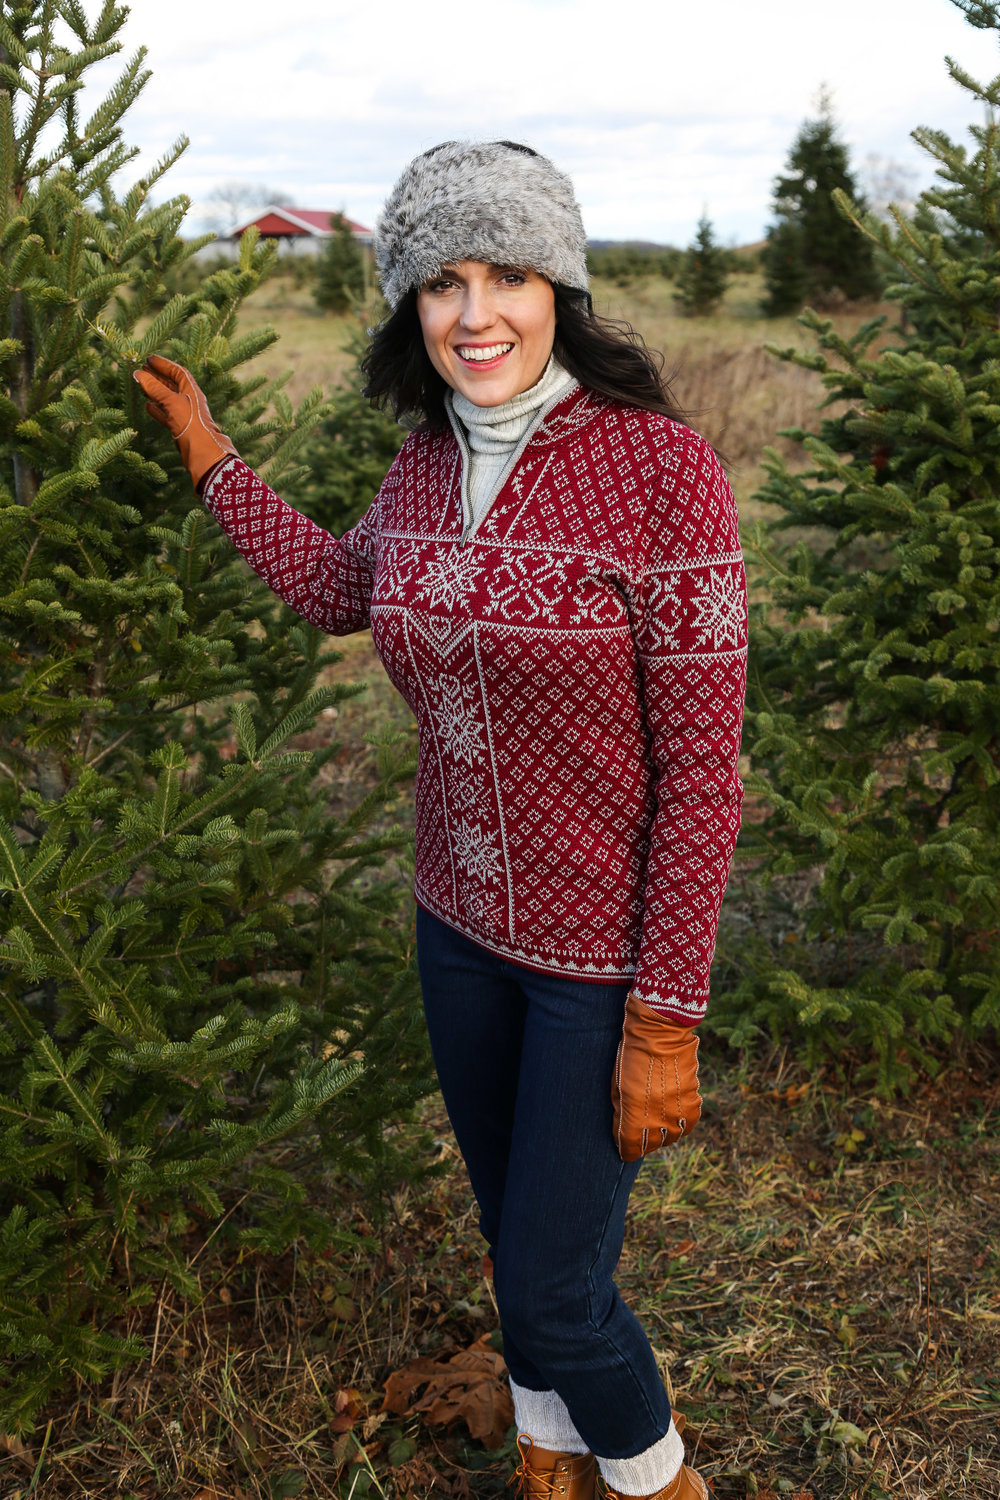 christmas-tree-cutting-outfit1.jpg